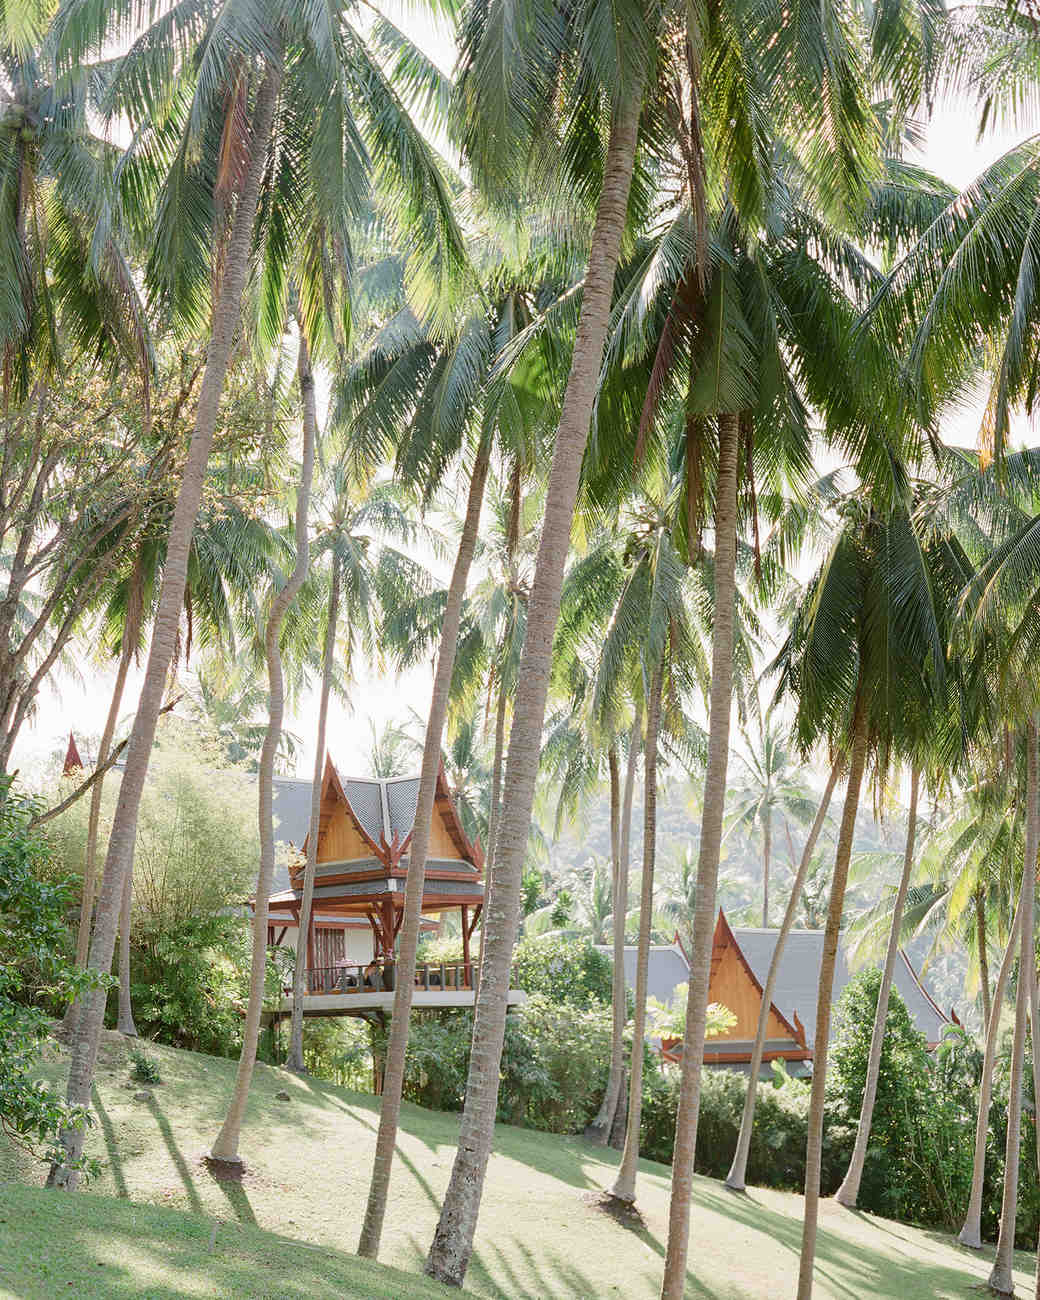 stacy brad wedding thailand palm trees